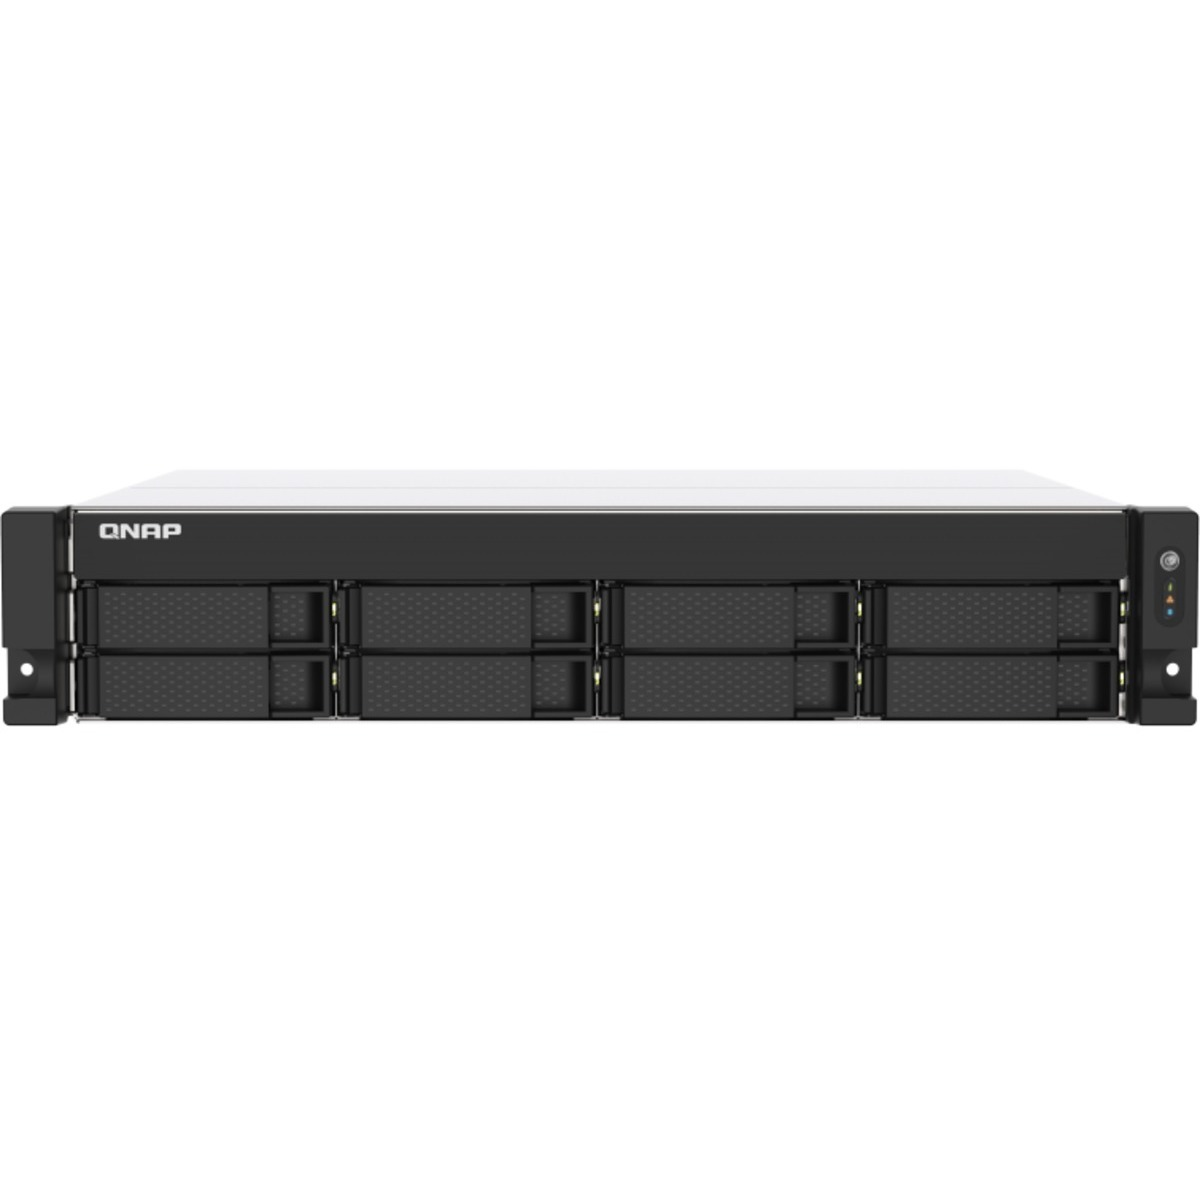 buy $6288 QNAP TS-853DU-RP 112tb RackMount NAS - Network Attached Storage Device 8x14000gb Western Digital Red Plus WD140EFFX 3.5 7200rpm SATA 6Gb/s HDD NAS Class Drives Installed - Burn-In Tested - FREE RAM UPGRADE - nas headquarters buy network attached storage server device das new raid-5 free shipping usa holiday new year clearance sale TS-853DU-RP